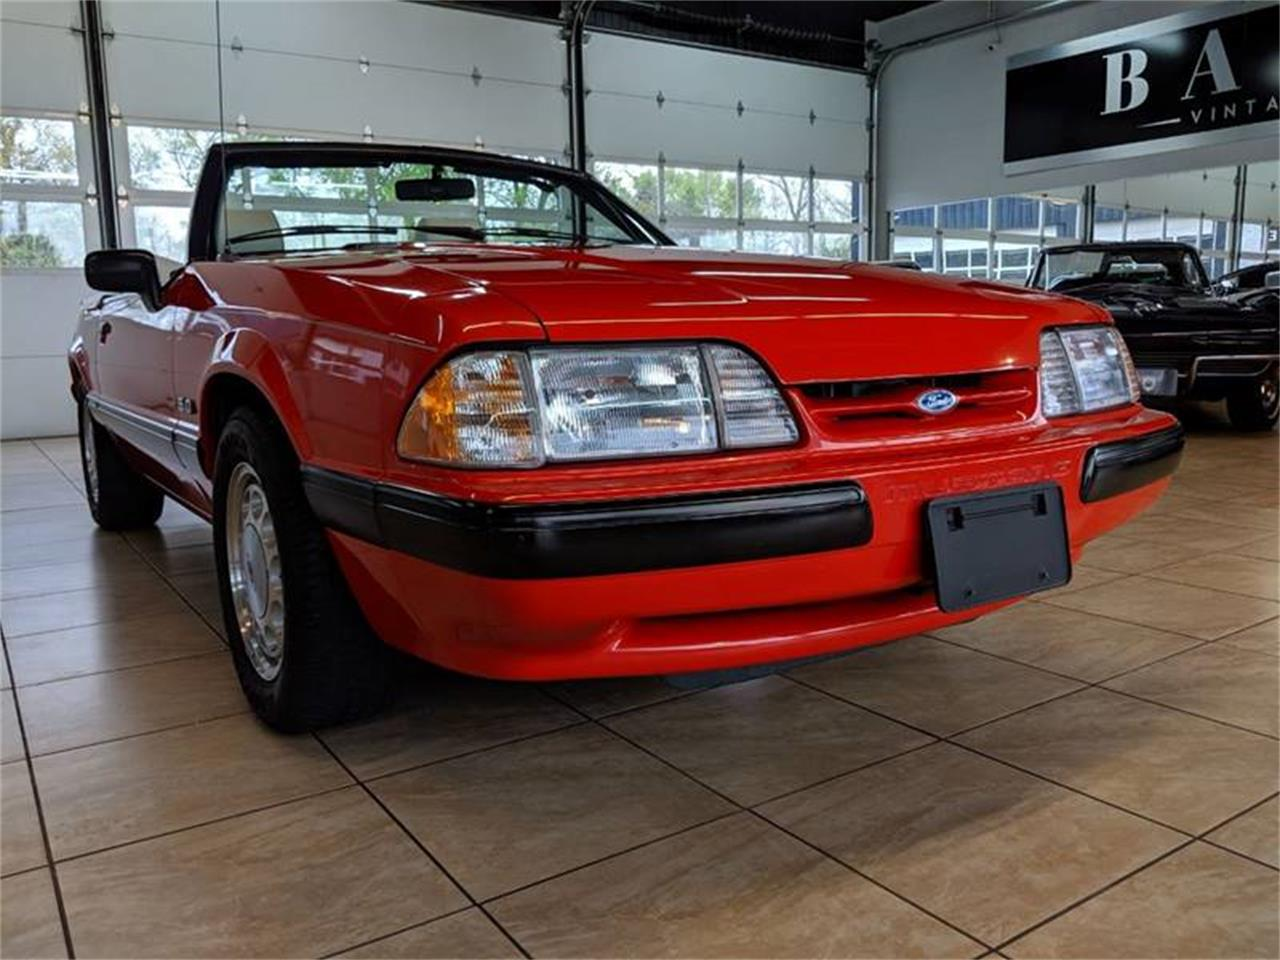 Large Picture of 1989 Ford Mustang located in Illinois - $17,900.00 Offered by Classics & Custom Auto - Q2R9